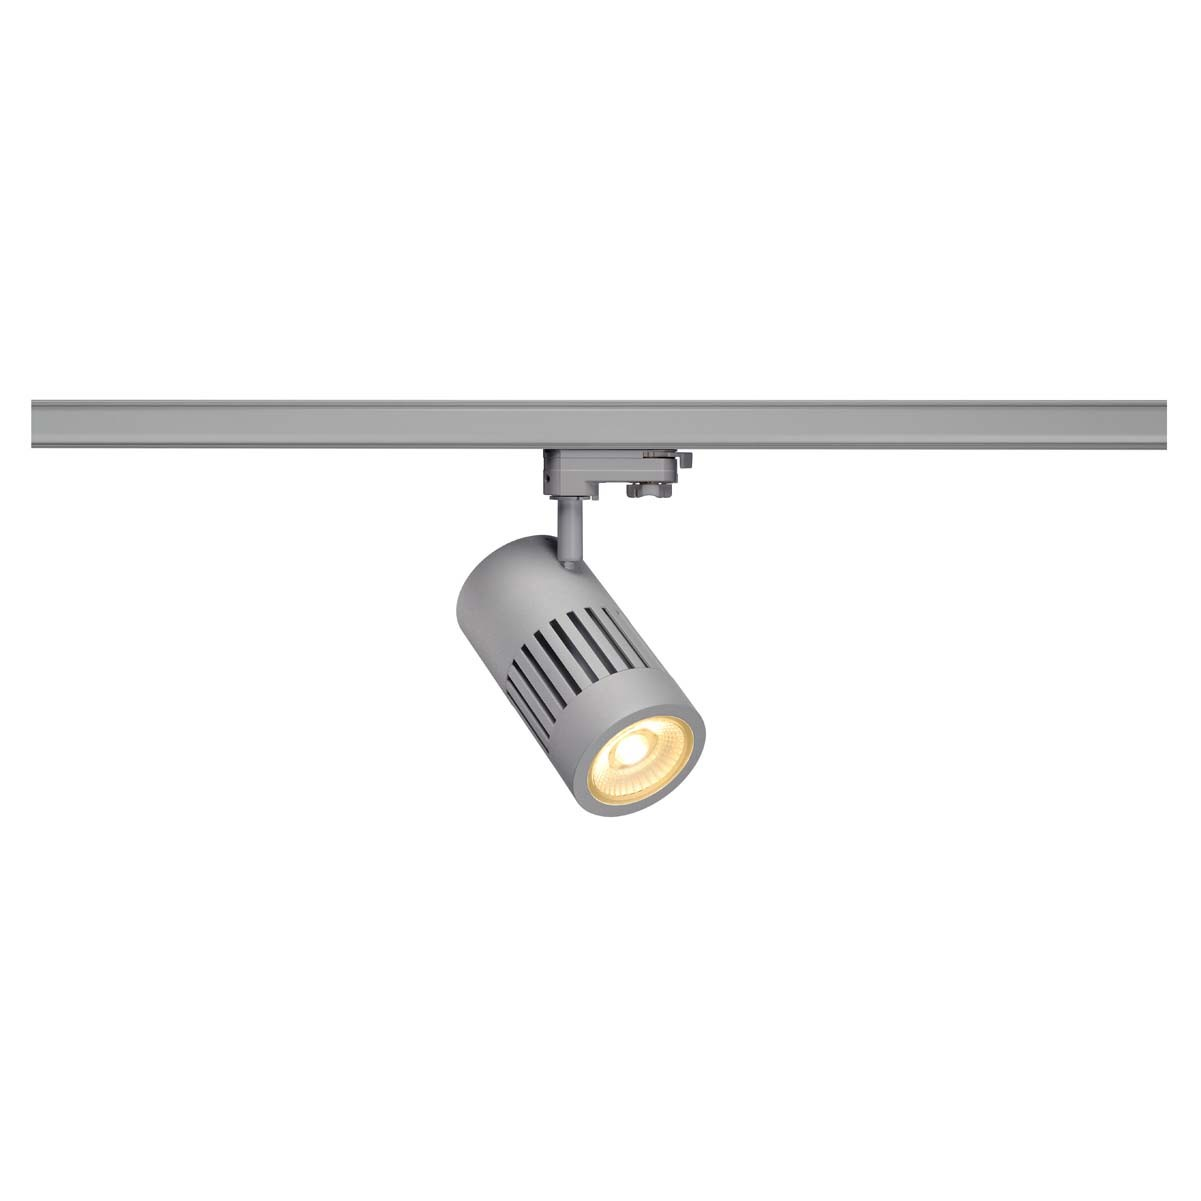 SLV 176054 STRUCTEC LED 30W, round, silver, 3000K, 60°, incl. 3-phase adapter